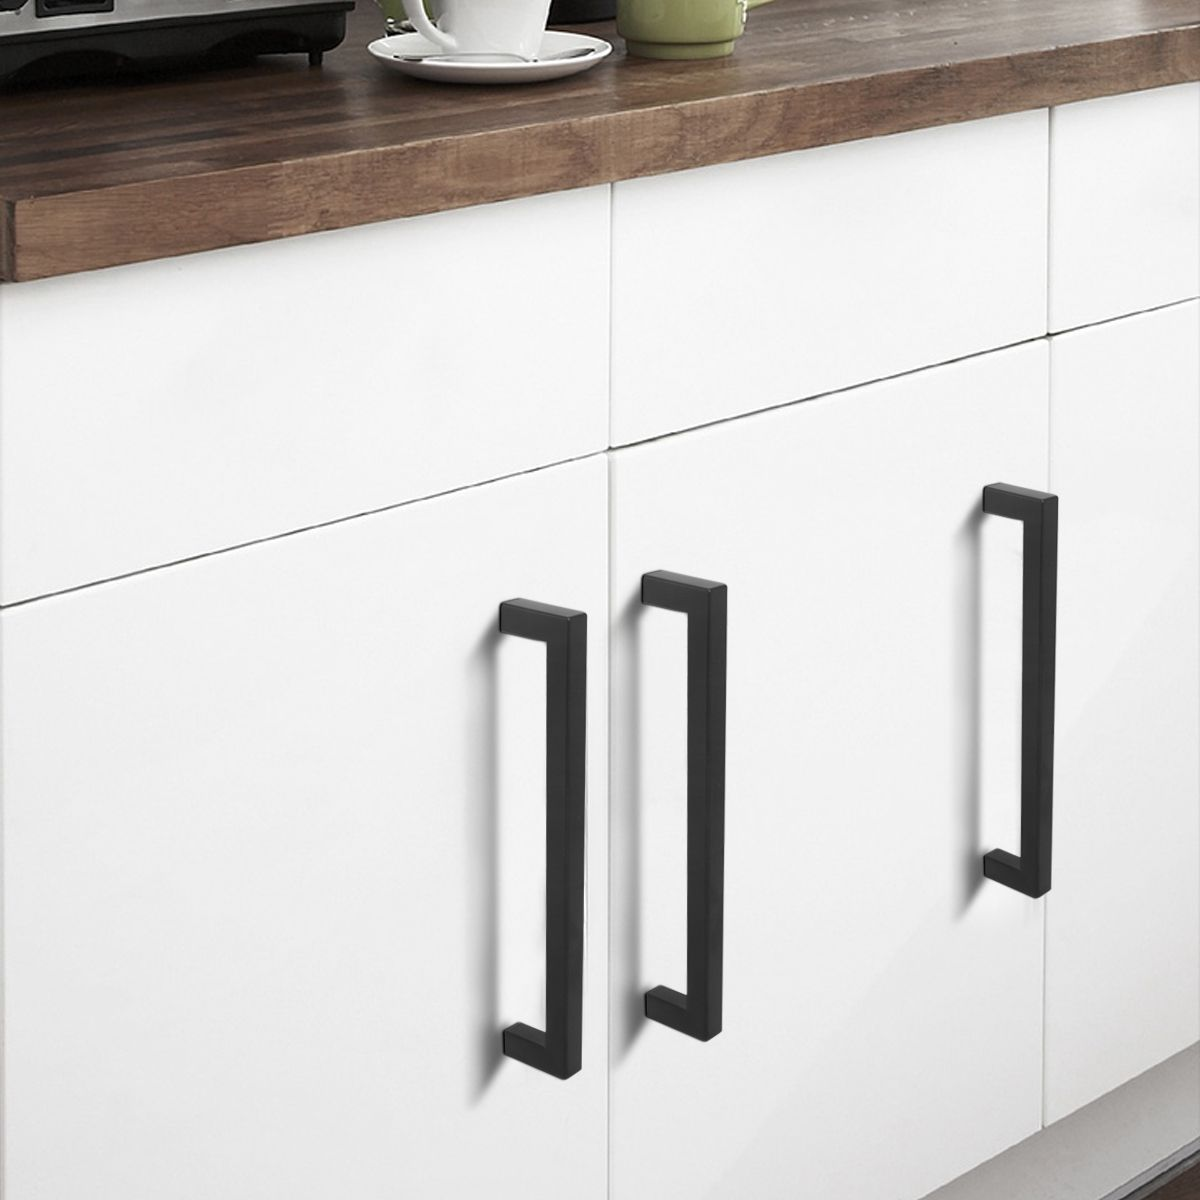 Pin On Home Design Inspiration